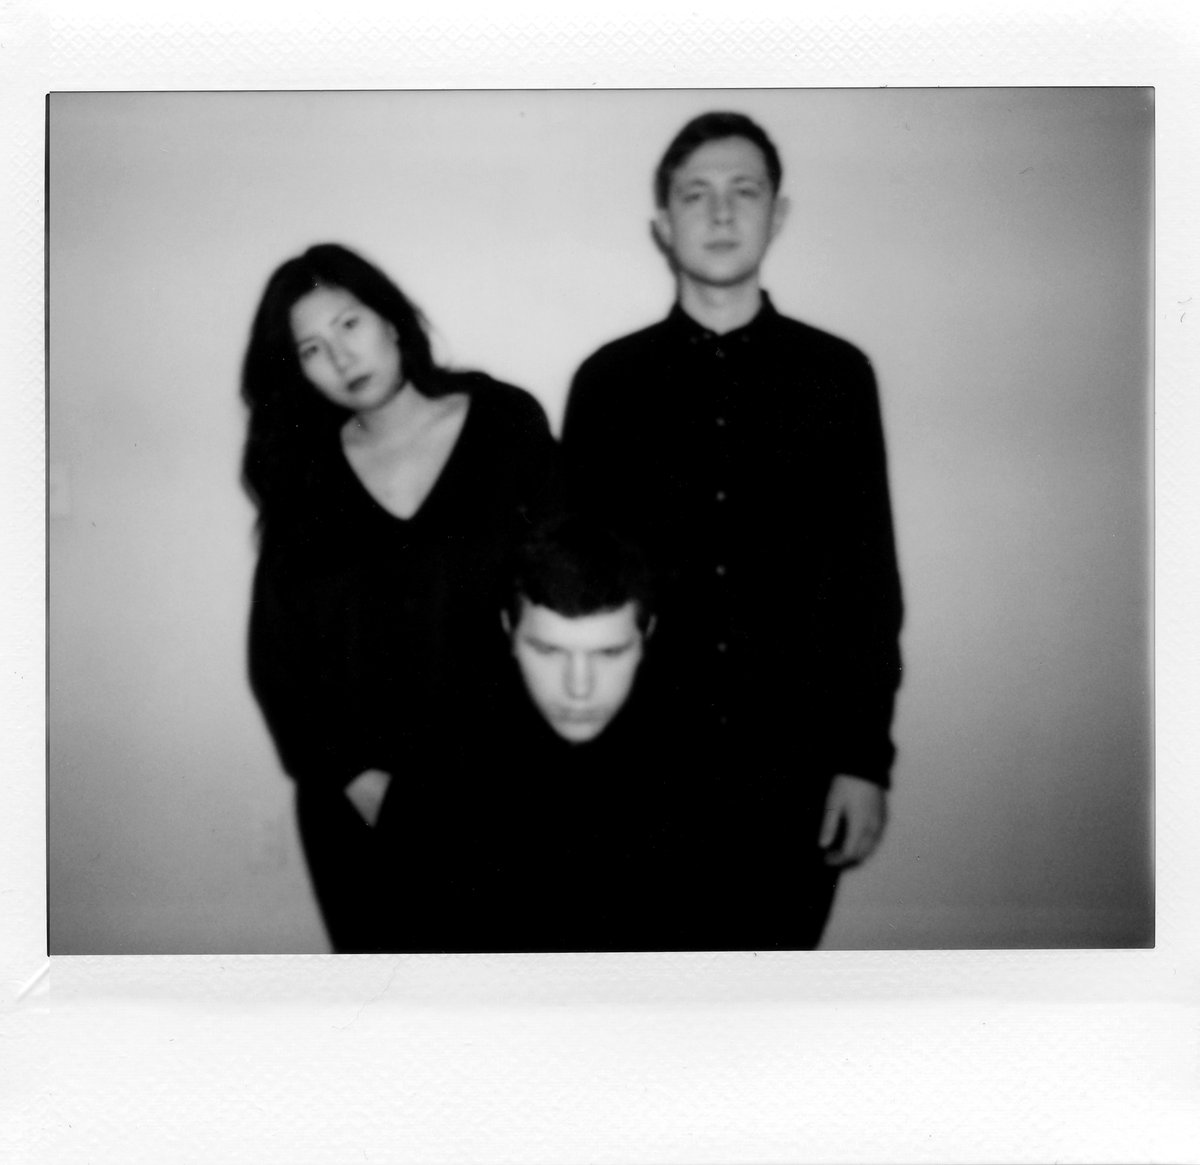 """Career"" by Wax Chattels is Northern Transmissions' 'Song of the Day'"